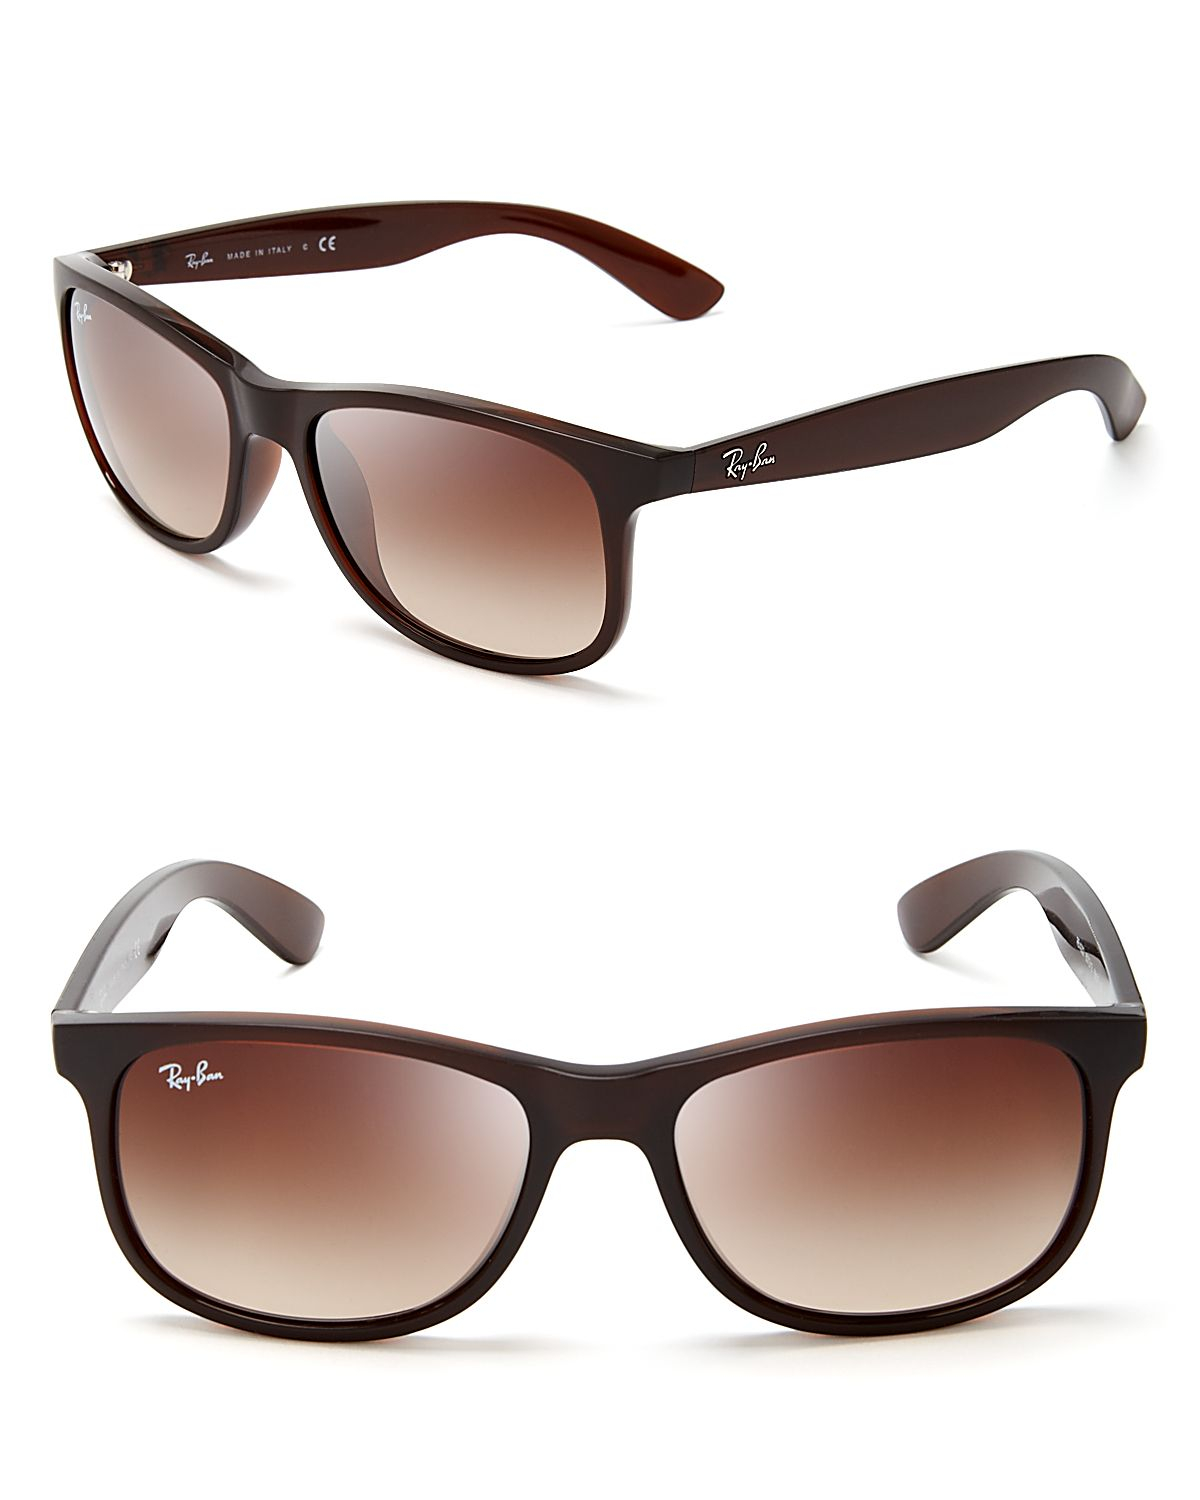 06a20776d33b Gallery. Previously sold at  Bloomingdale s · Men s Wayfarer Sunglasses  Men s Ray Ban ...